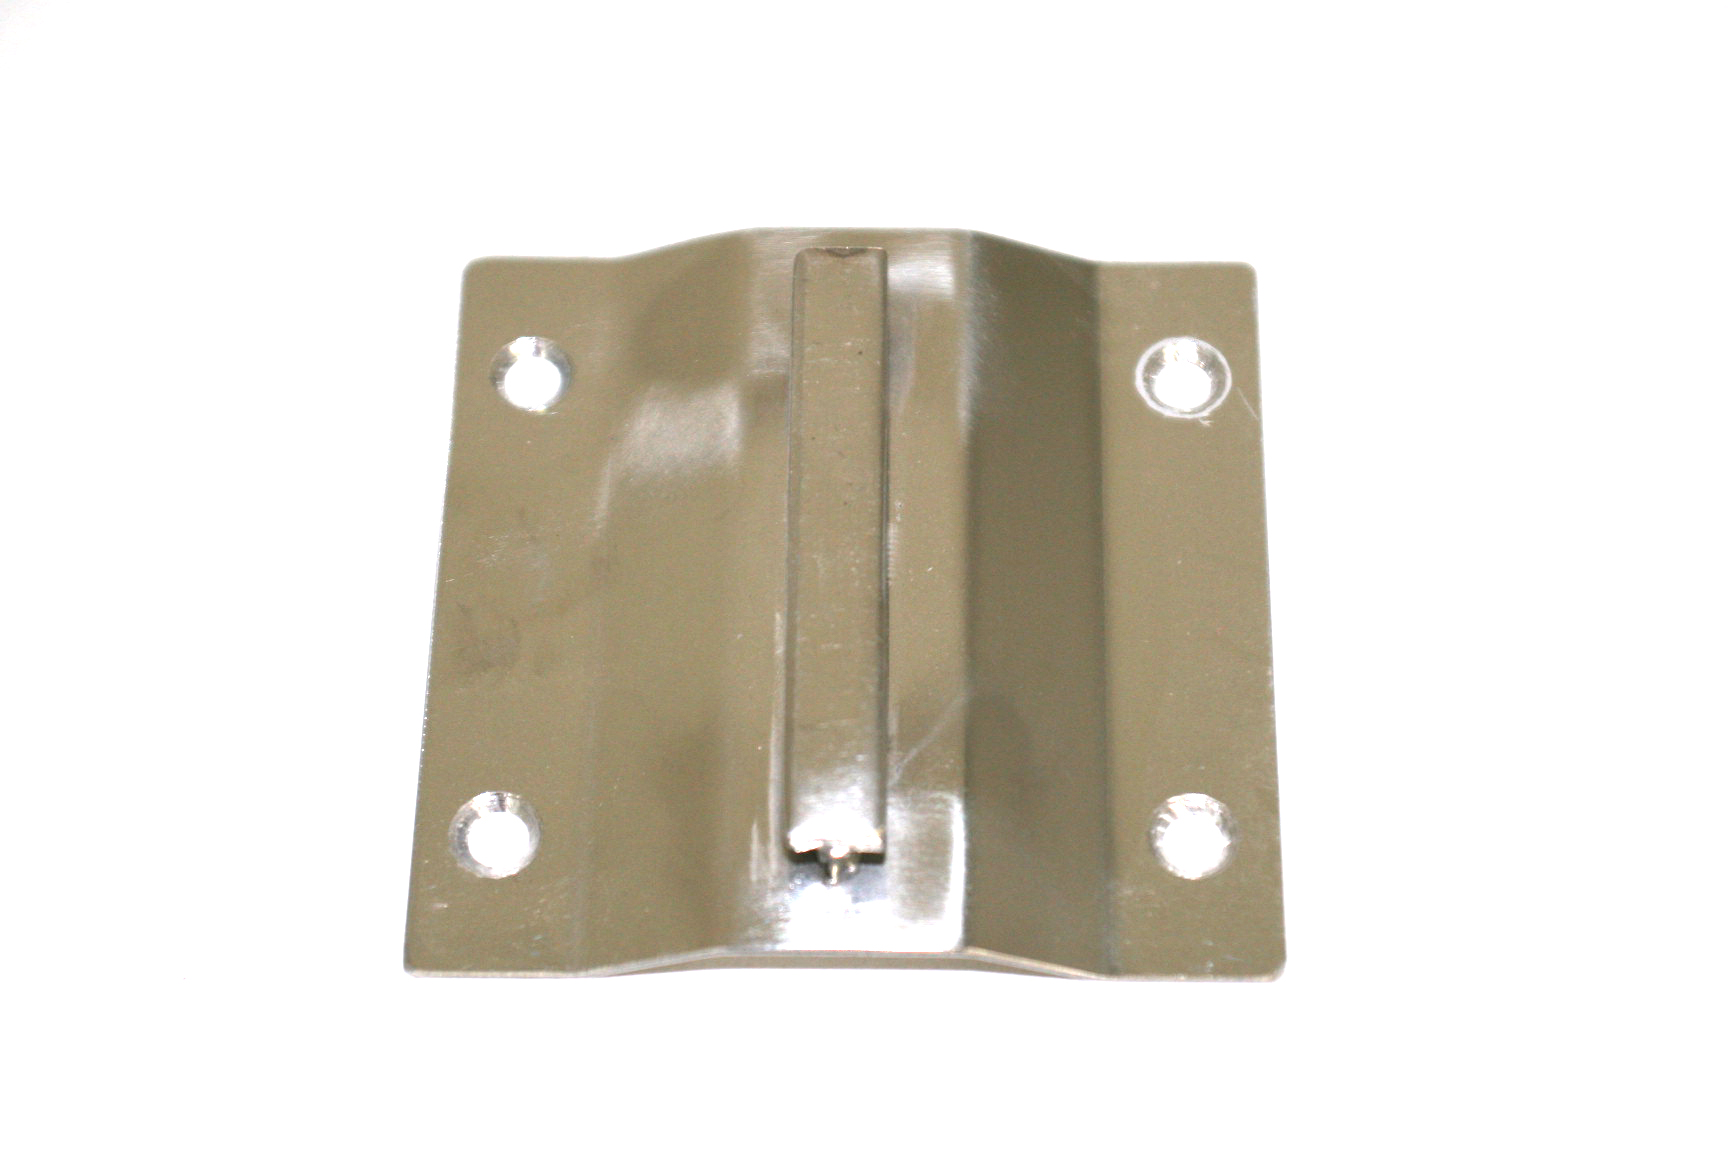 Wall Mounted Belt Receiver for Stretch Barrier System - BE Furniture Sales